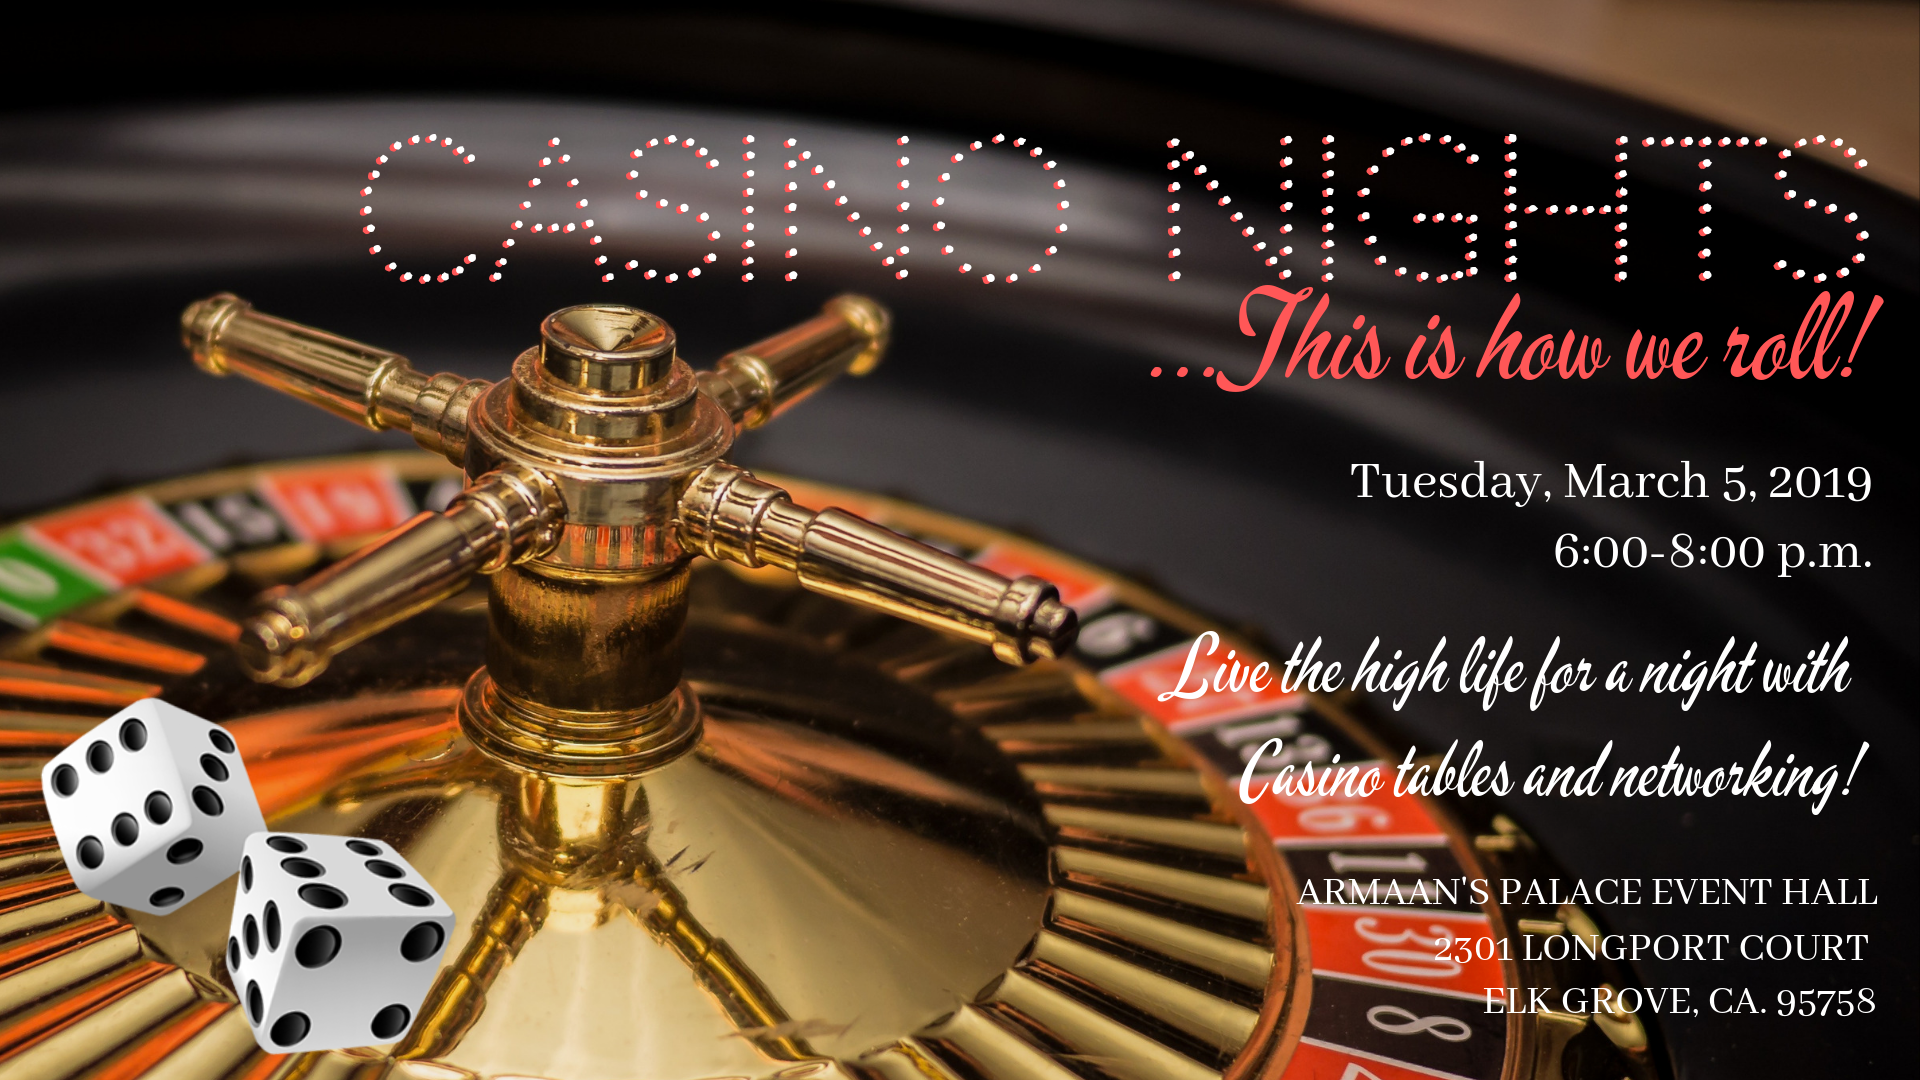 Casino Nights wedding professional networking mixer